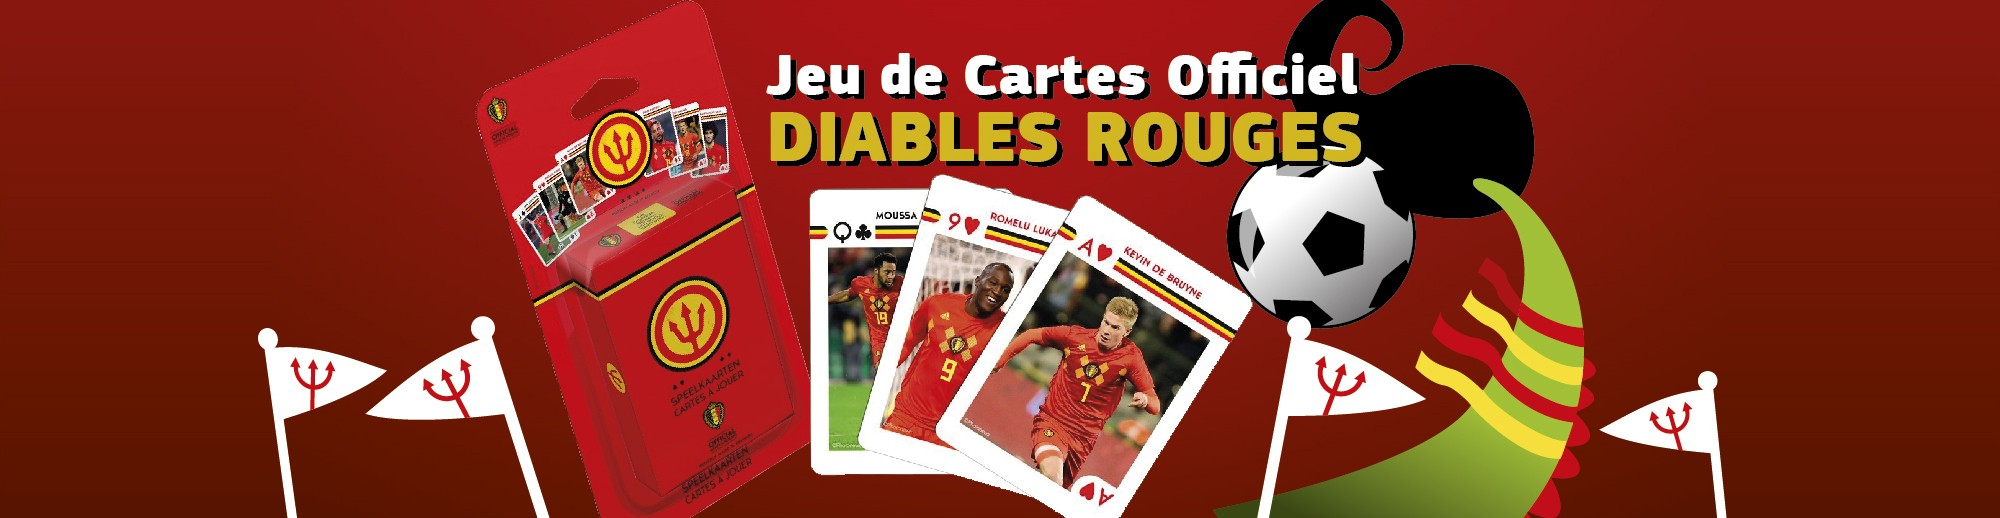 Jeu de cartes officiel des Diables Rouges